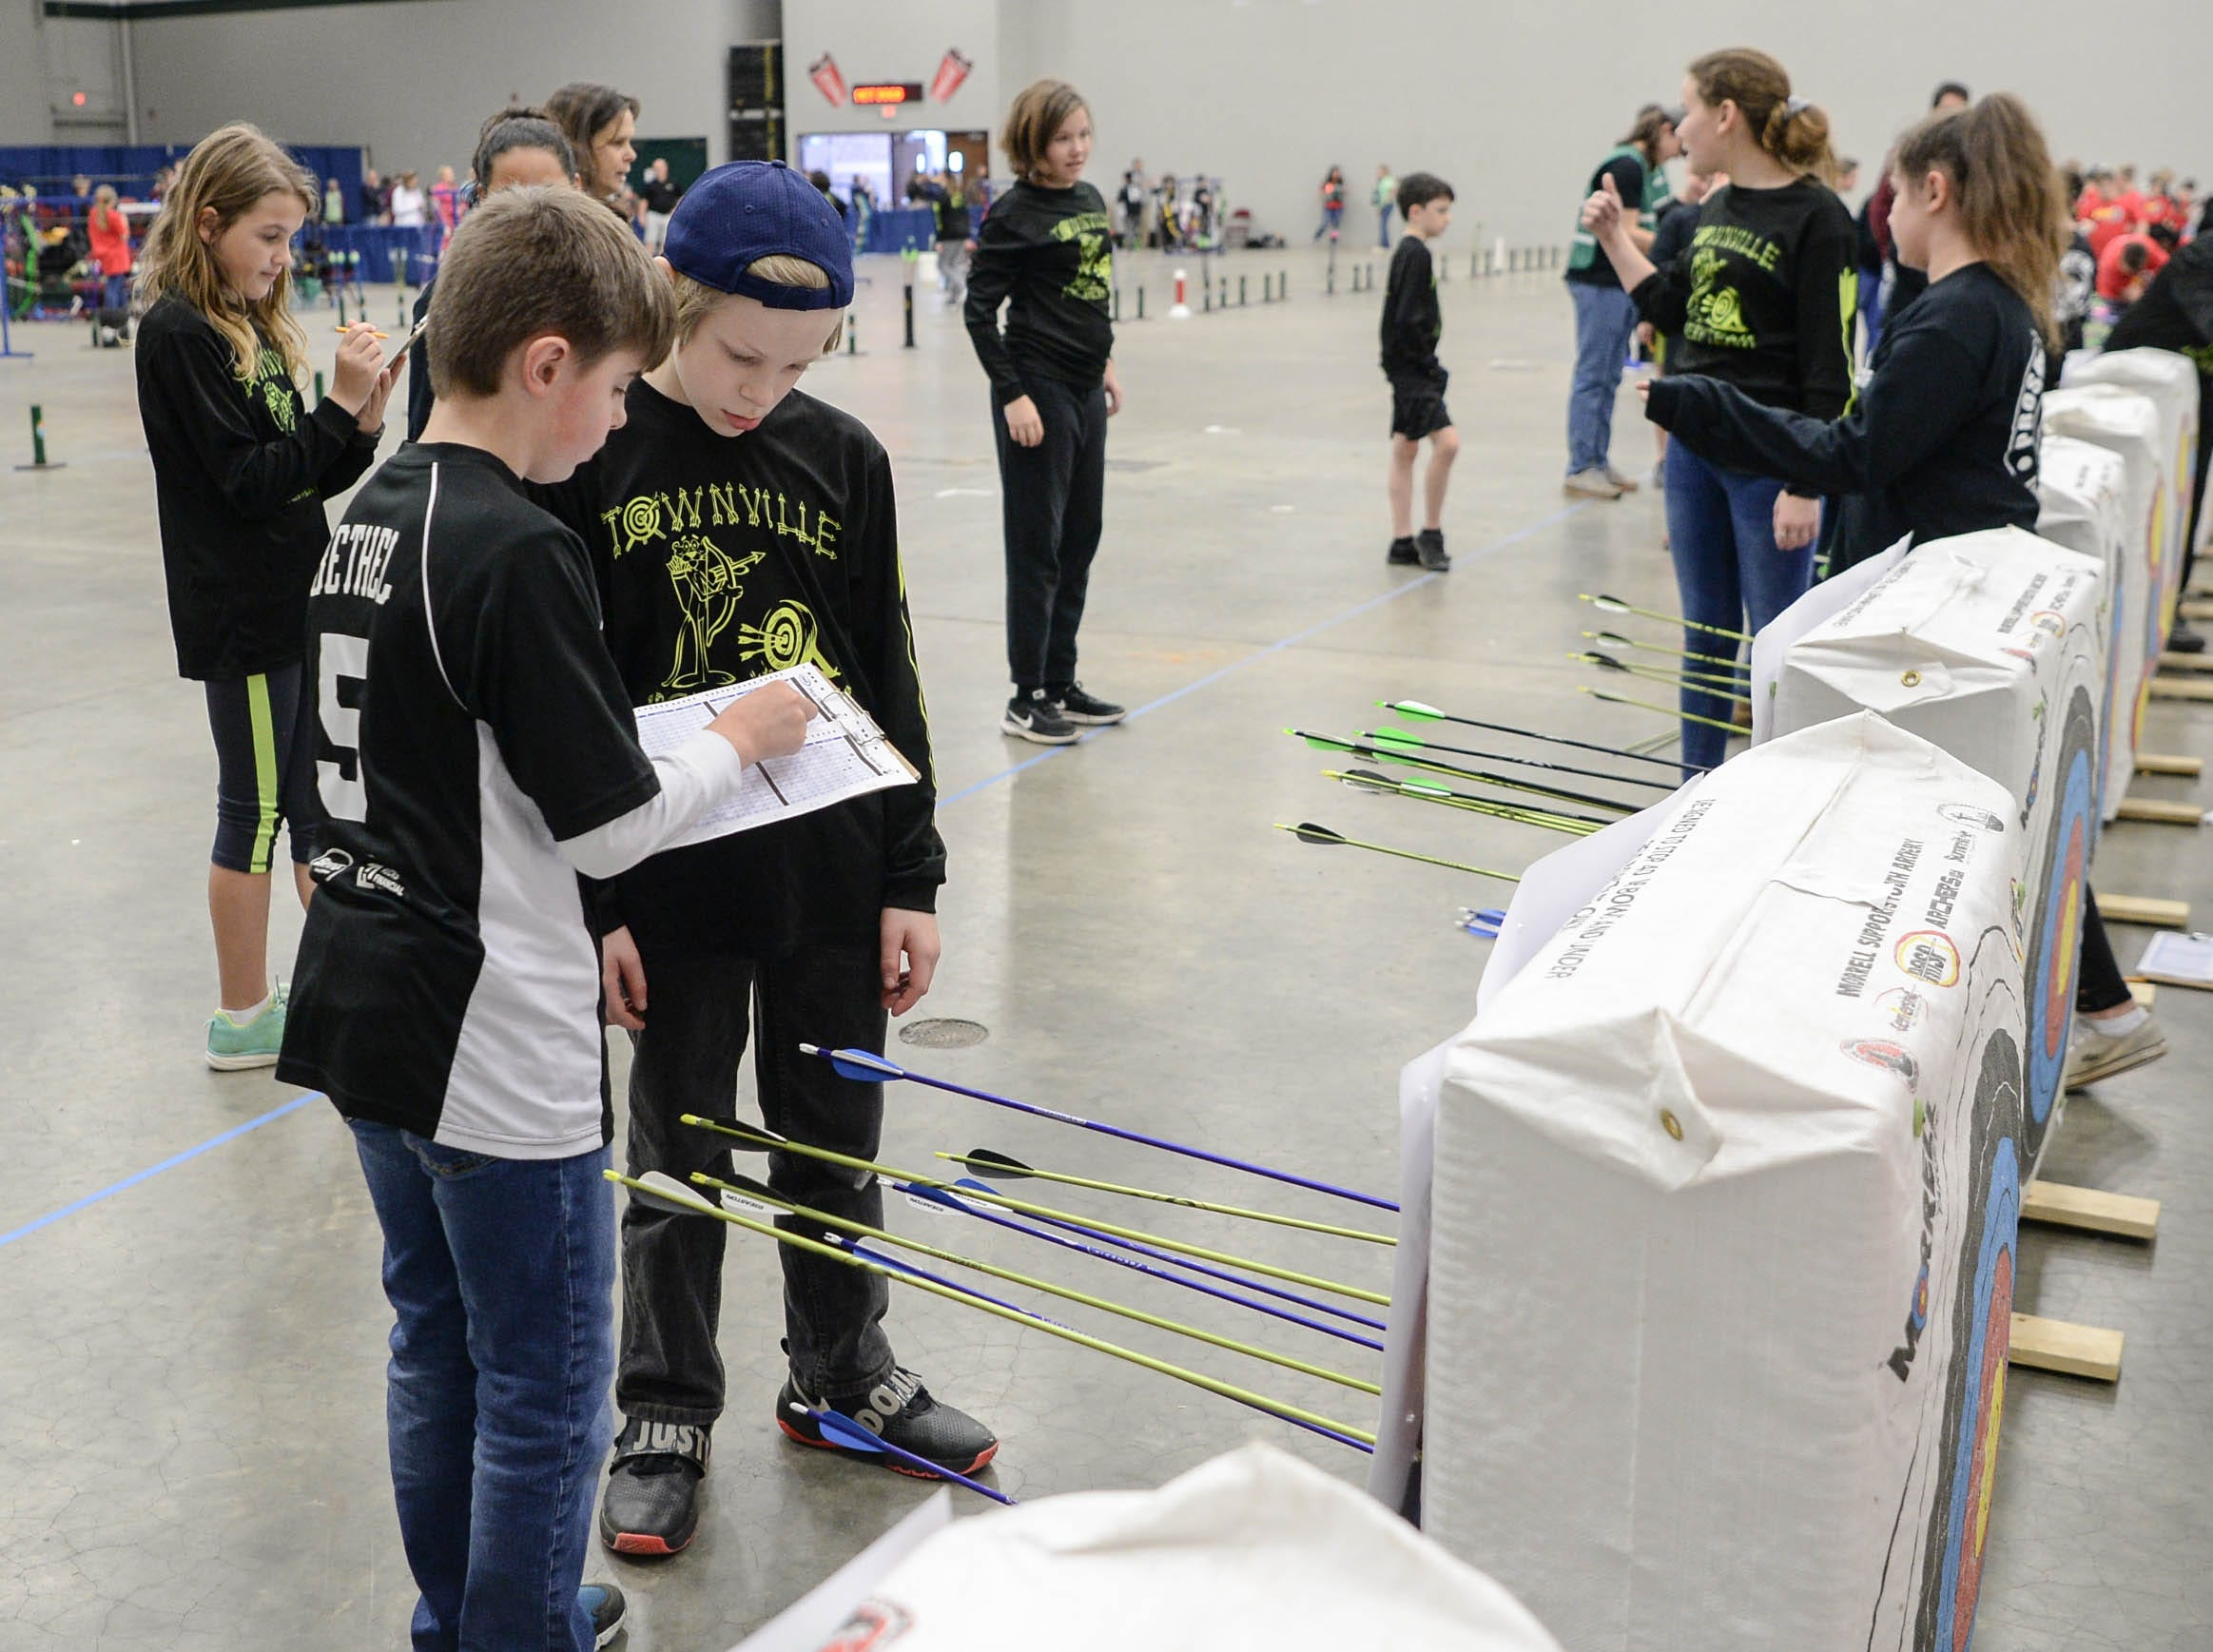 Students tally points after shooting their arrows during the South Carolina Department of Natural Resources regional National Archery in the Schools Program (NASP) regional competition at the Anderson Civic Center Wednesday.  The program, which awards $50,000 in scholarships to high school seniors, is a joint venture between state departments of Education and Wildlife. The competition in Anderson, leading up to the state finals March 26-28 in Sumter, had 950 children from 14 elementary and 23 high schools around the state.